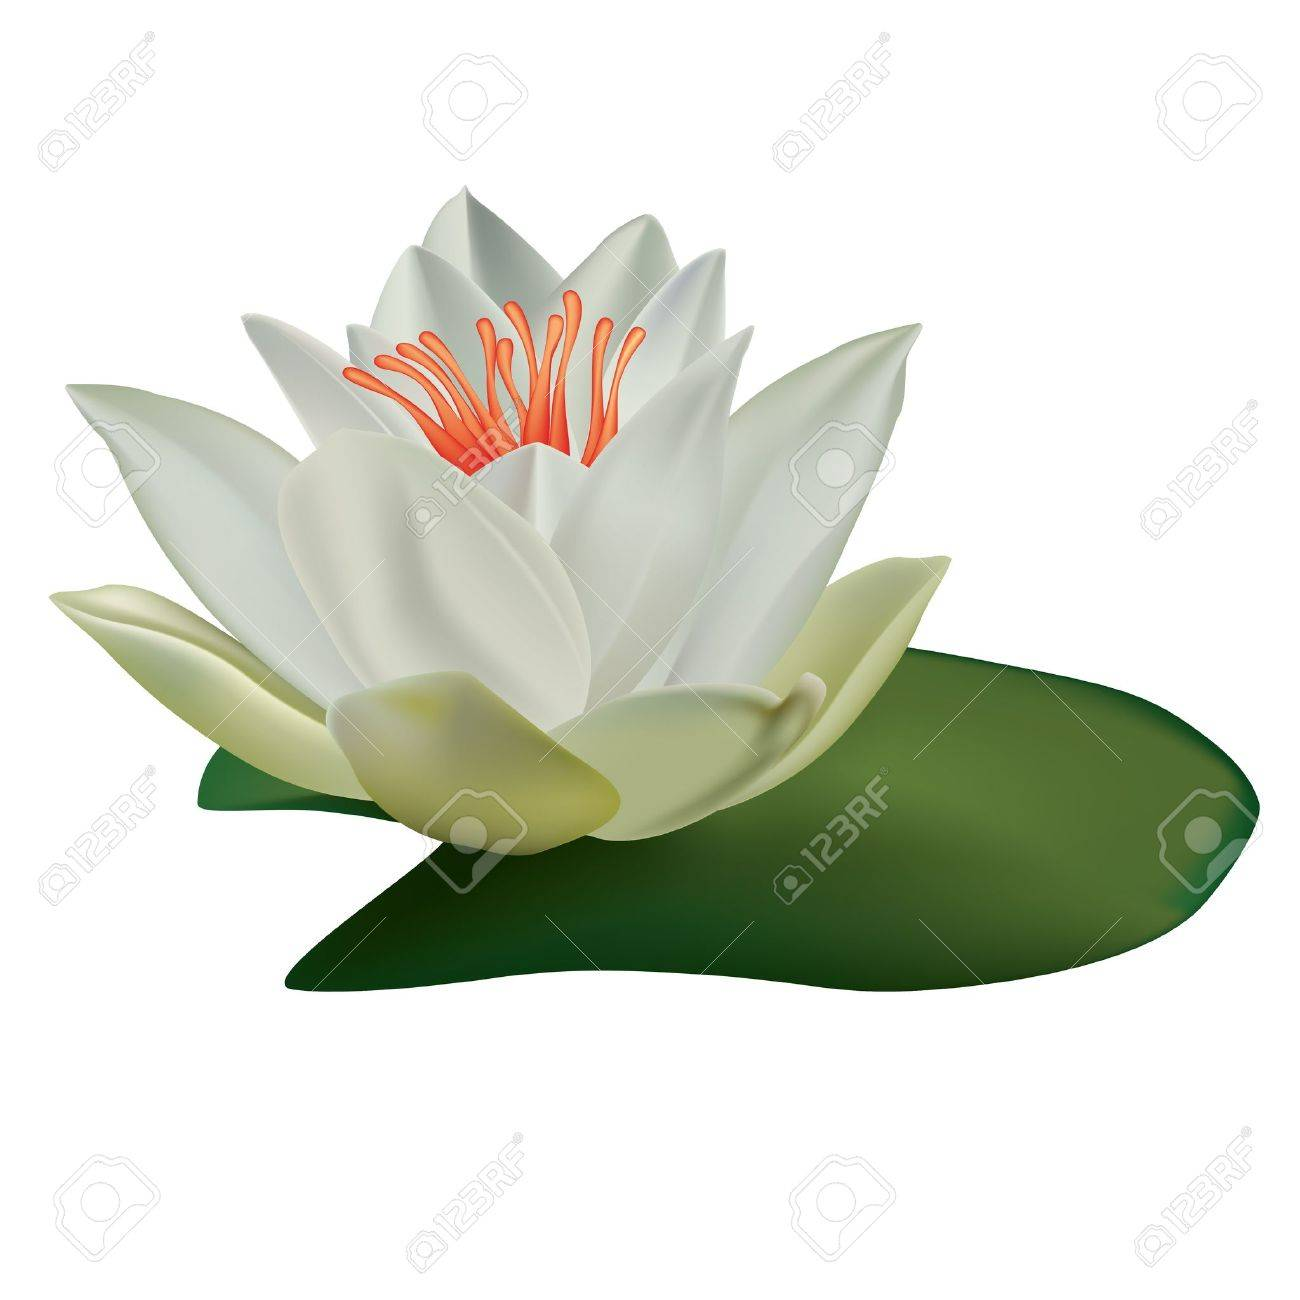 Water lily stock photos royalty free water lily images white lotus isolated on a white background illustration izmirmasajfo